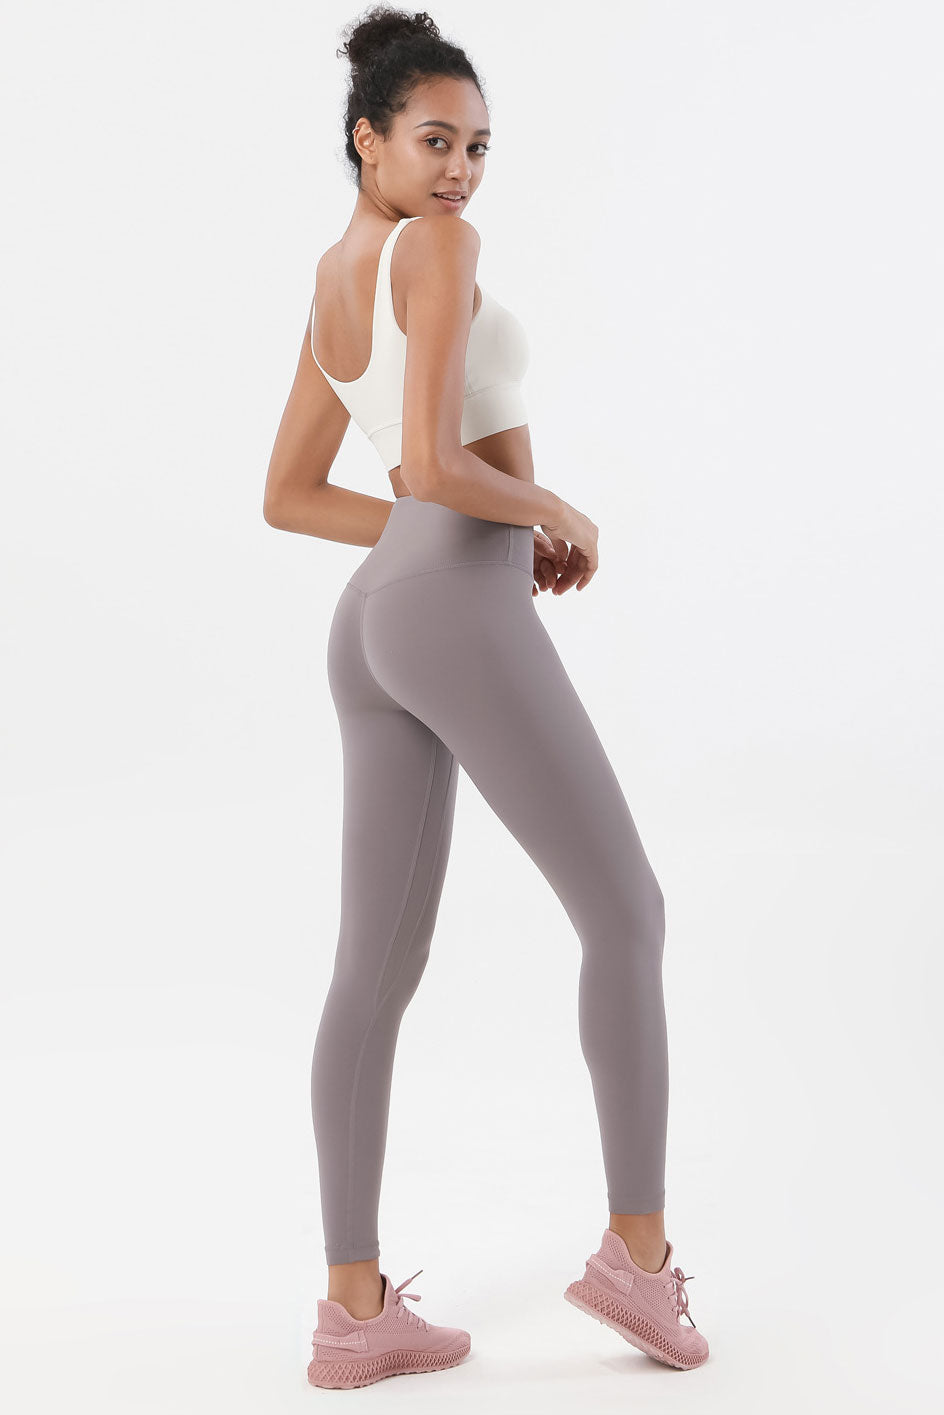 Ida High Waisted Full Length Leggings - Color: Lunar Rock - Zeebra Activewear